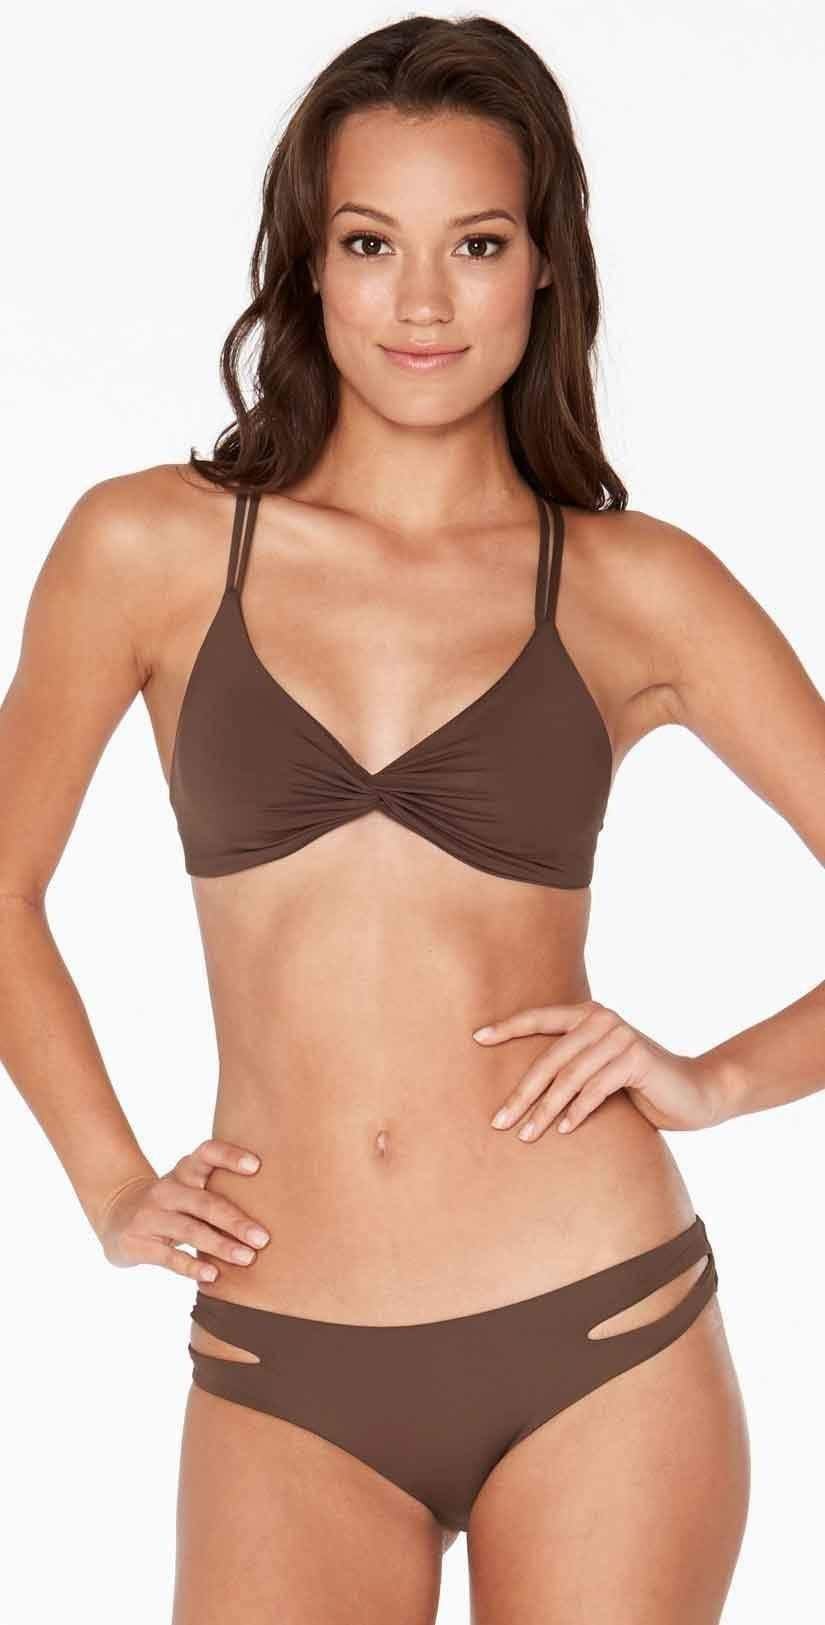 L Space Hartley Top in Chocolate LSHRT17-CHO: